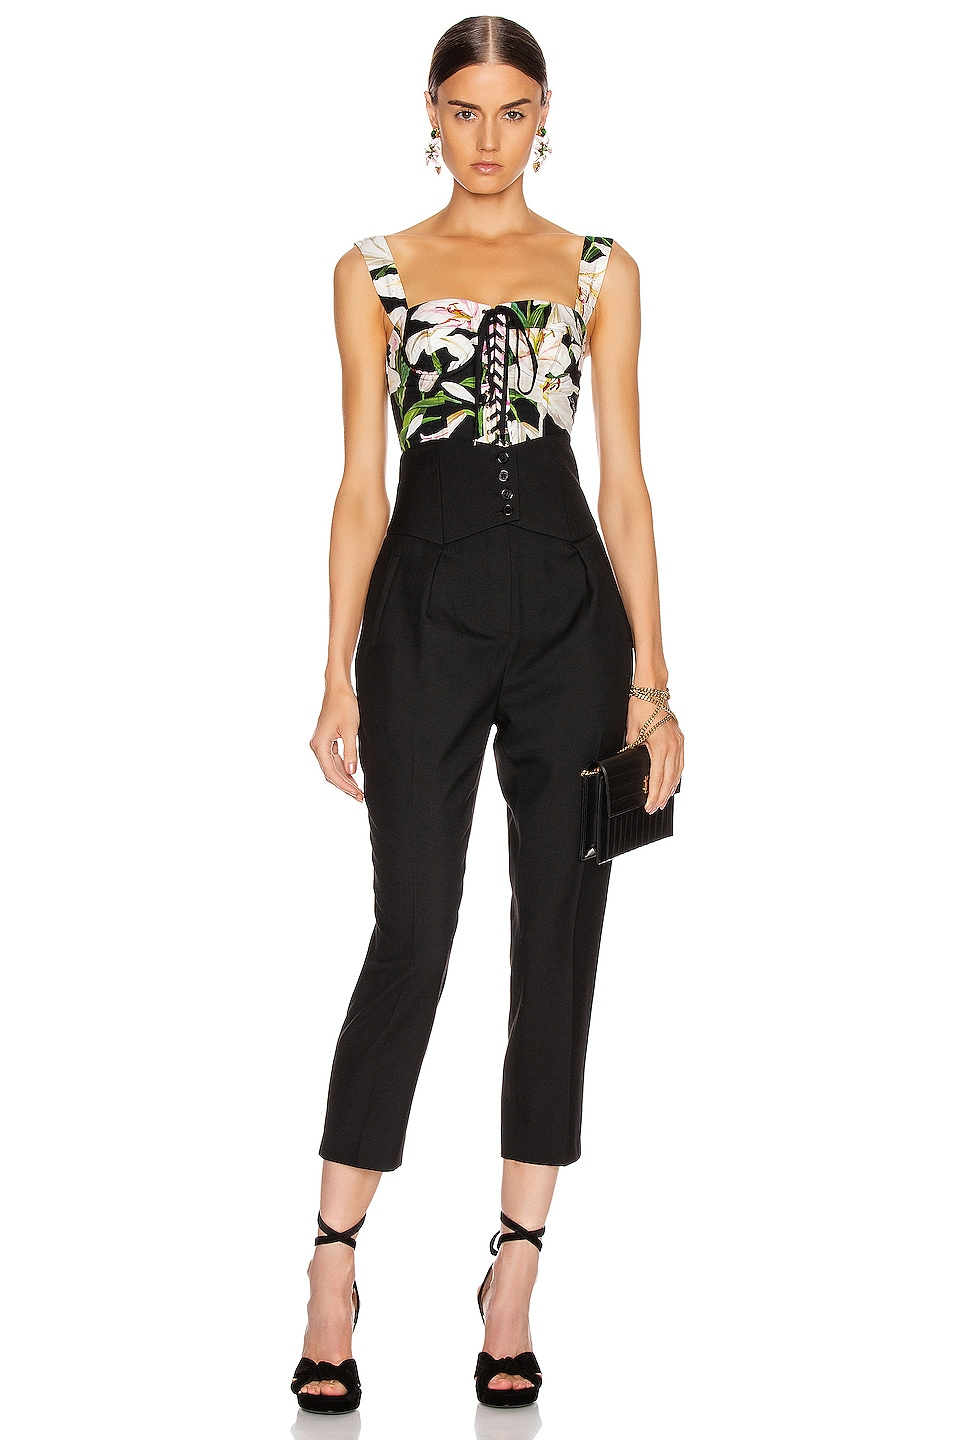 Image 5 of Dolce & Gabbana Lace Up Short Corset Top in Black Floral